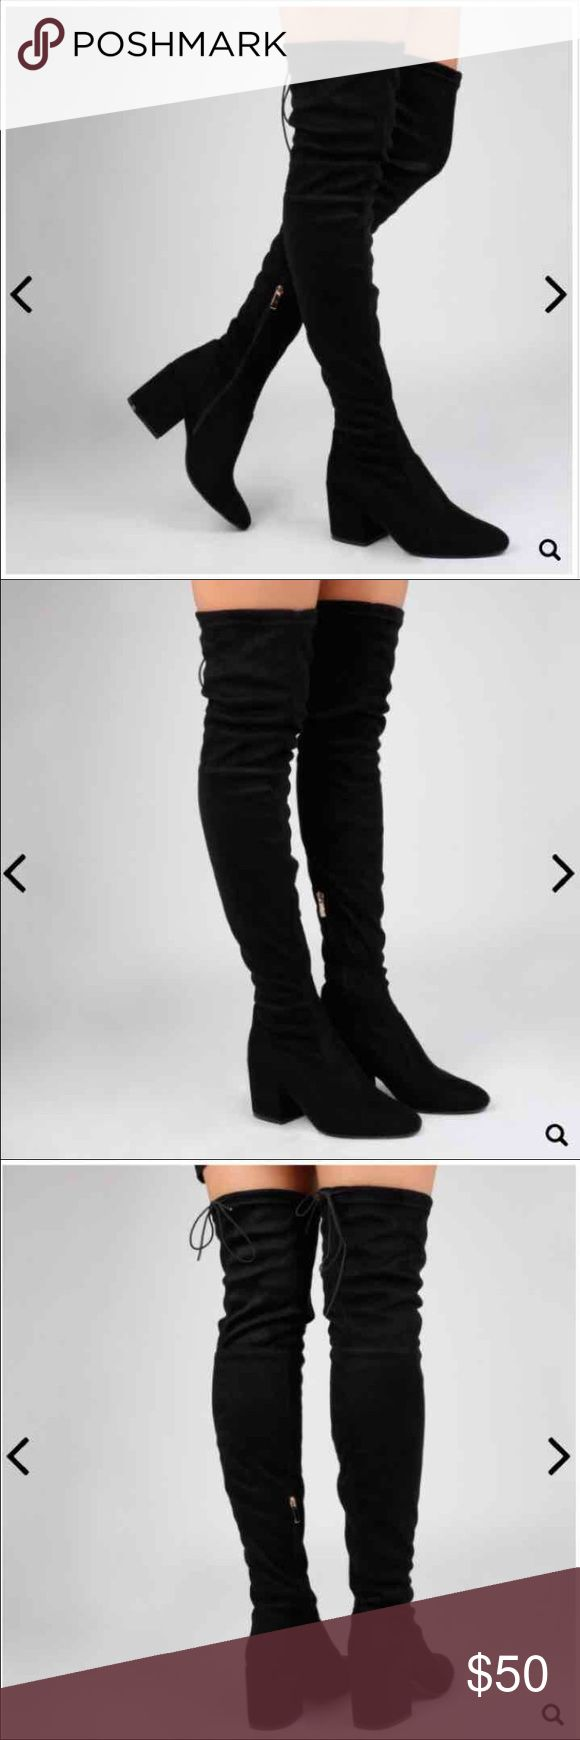 "Size:8 Naturi Black Long Boot/ over the knee Heel Height: 4"", Shoe Height: 26"" Material: Synthetic  Over the knee boots Boots are in their original box new never worn  Get this for $30 on the fashion stash app with my code: LTK for $10 credit shipping is cheap to Shoes Over the Knee Boots"